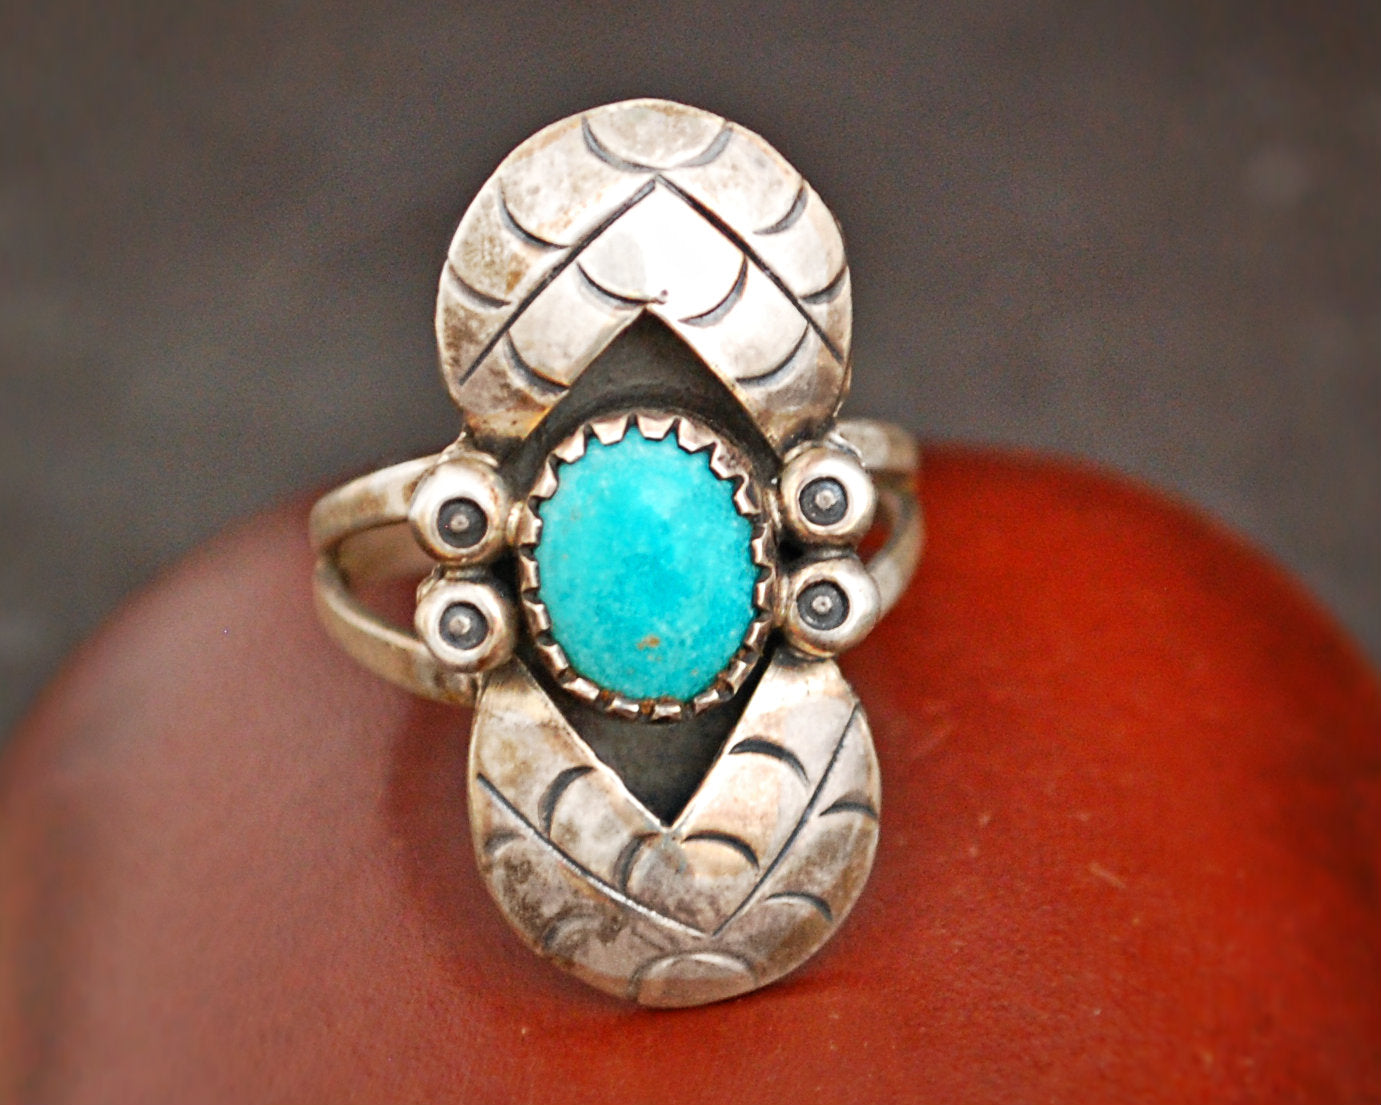 Native American Turquoise Ring - Size 7.5